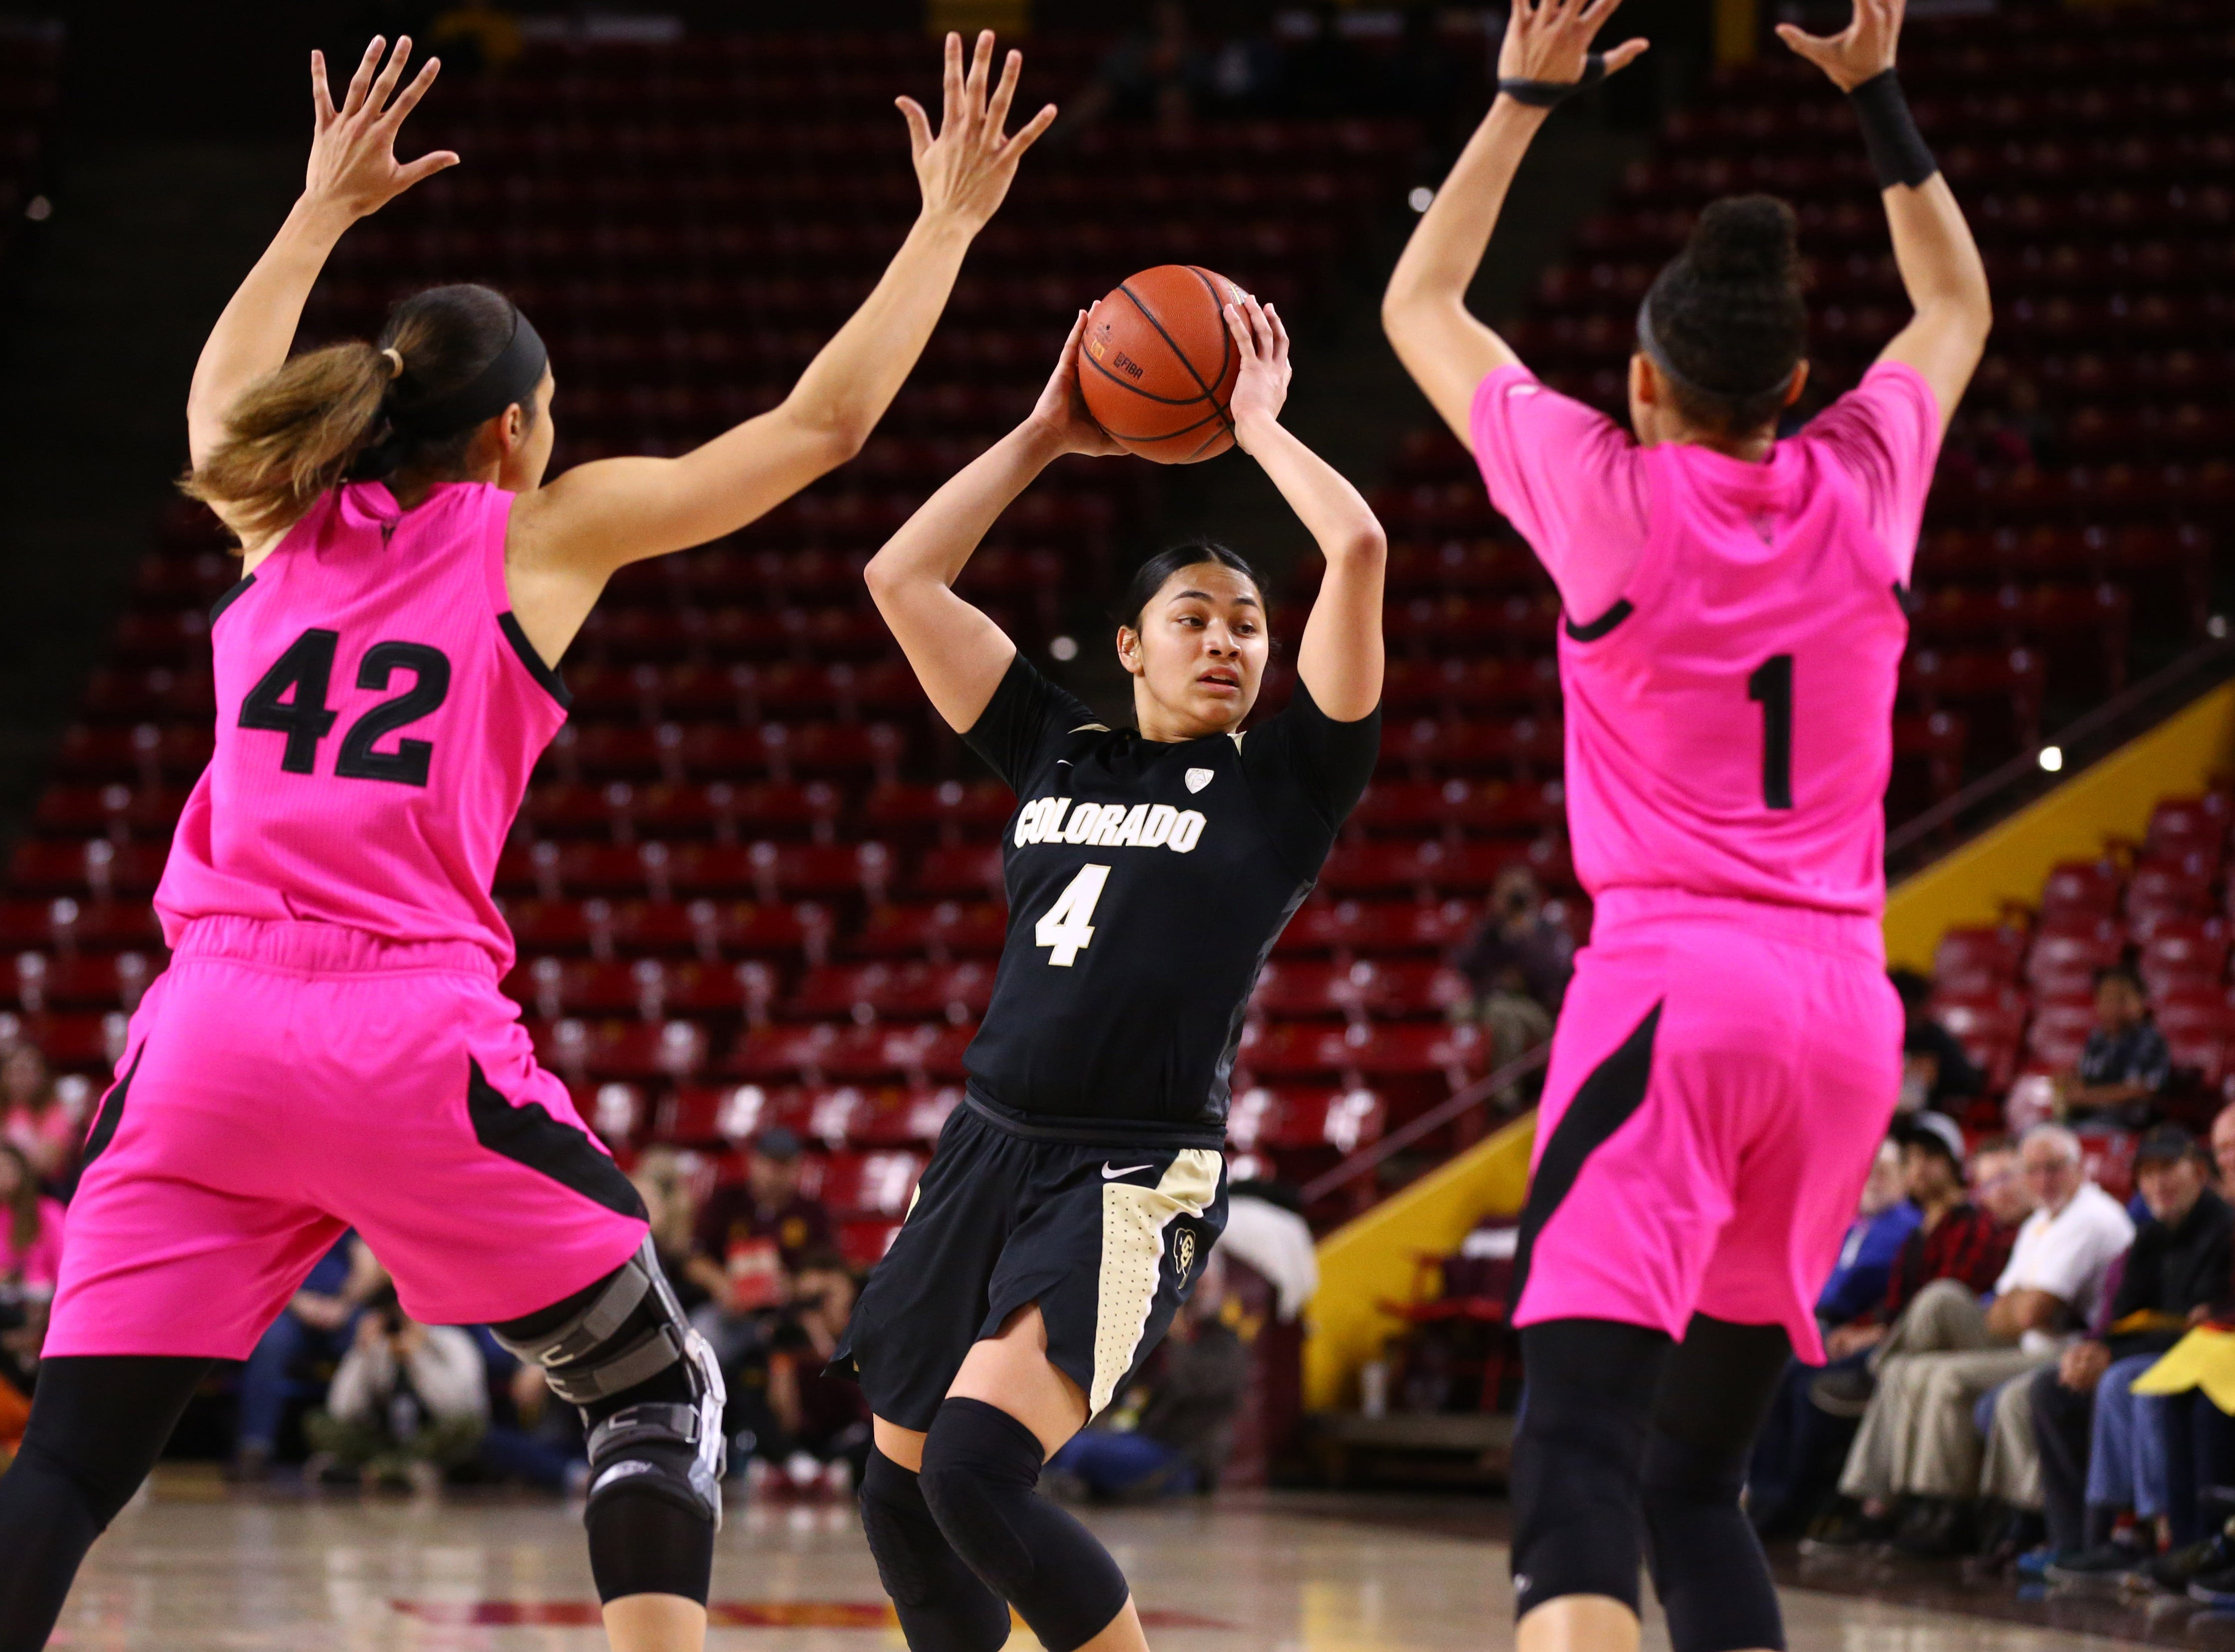 Arizona State Sun Devils Kianna Ibis (42) and Taya Hanson (1) pressure Colorado Buffaloes guard Lesila Finau (4) in the first half on Feb. 15 at Wells Fargo Arena in Tempe, Ariz.